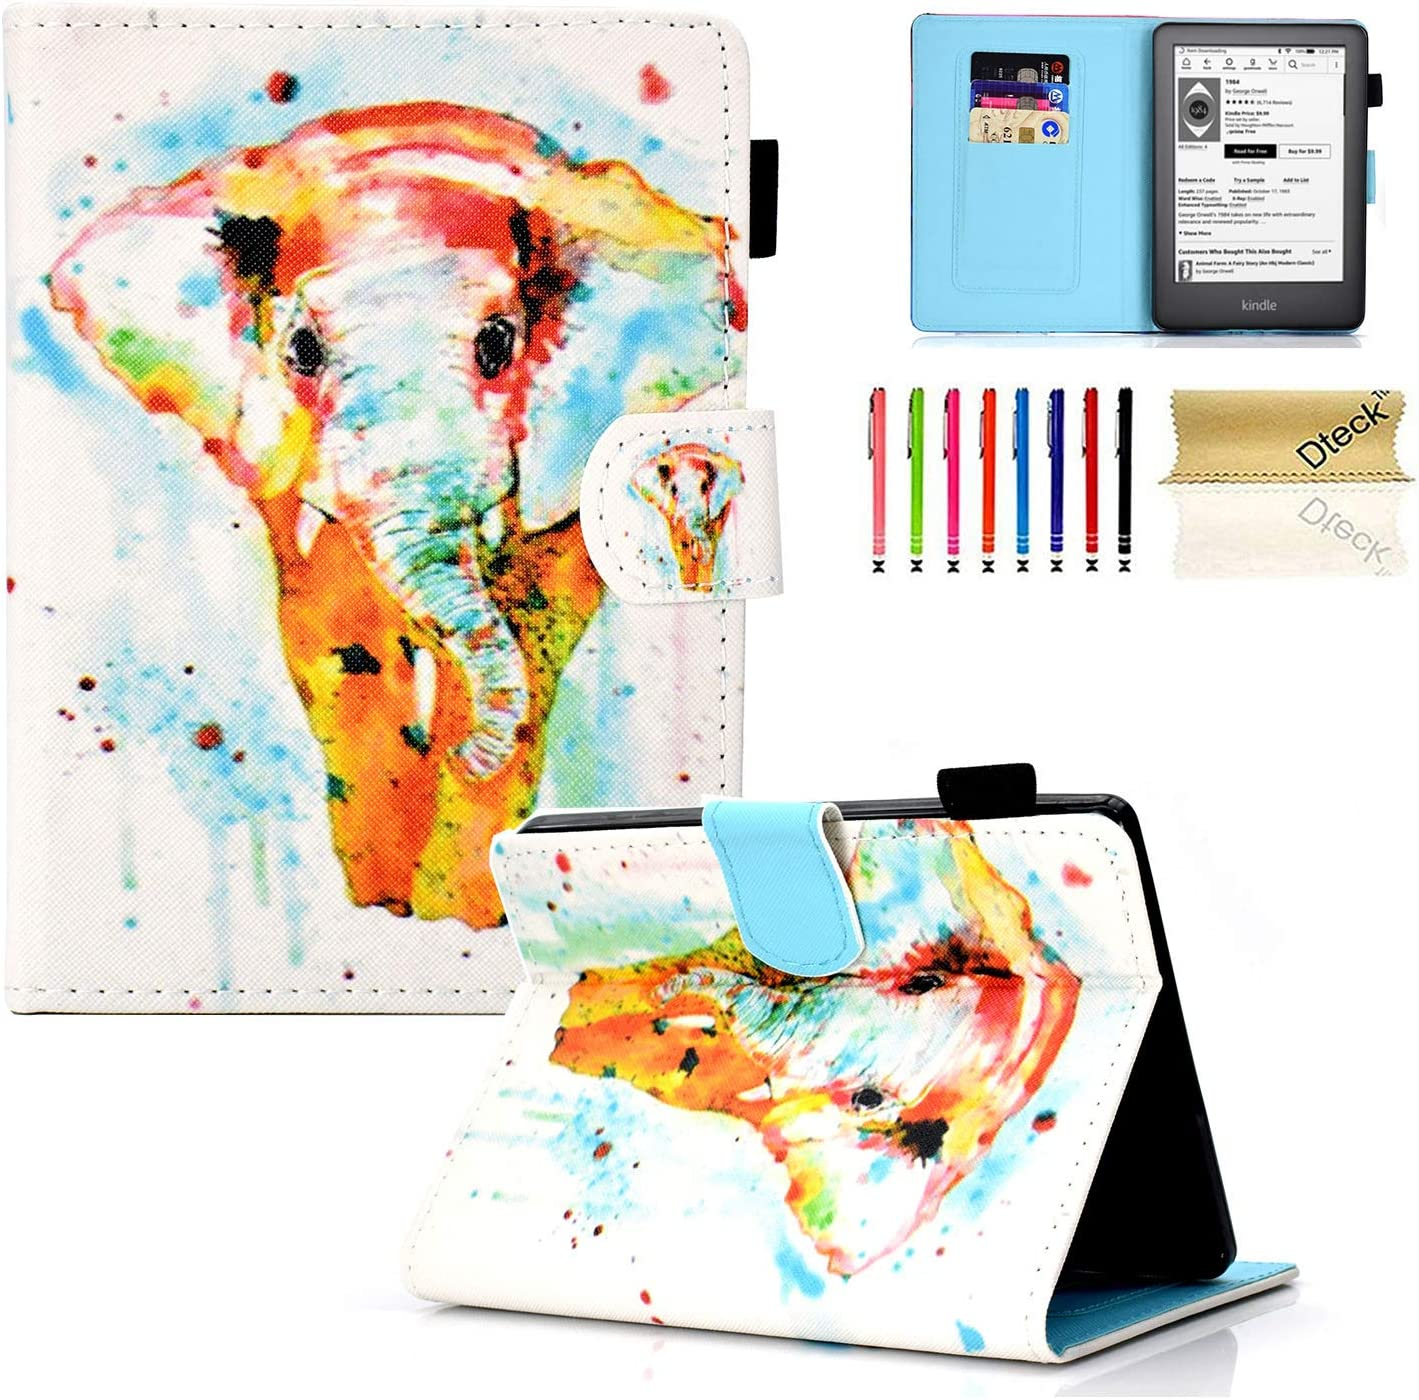 Kindle 10th Gen 2019 Case, Dteck Slim Fit Premium PU Leather Folio Case with Card Holder, Auto Wake/Sleep Smart Soft Back Cover for All-New Kindle 10th Generation 2019 Release, Color Elephant